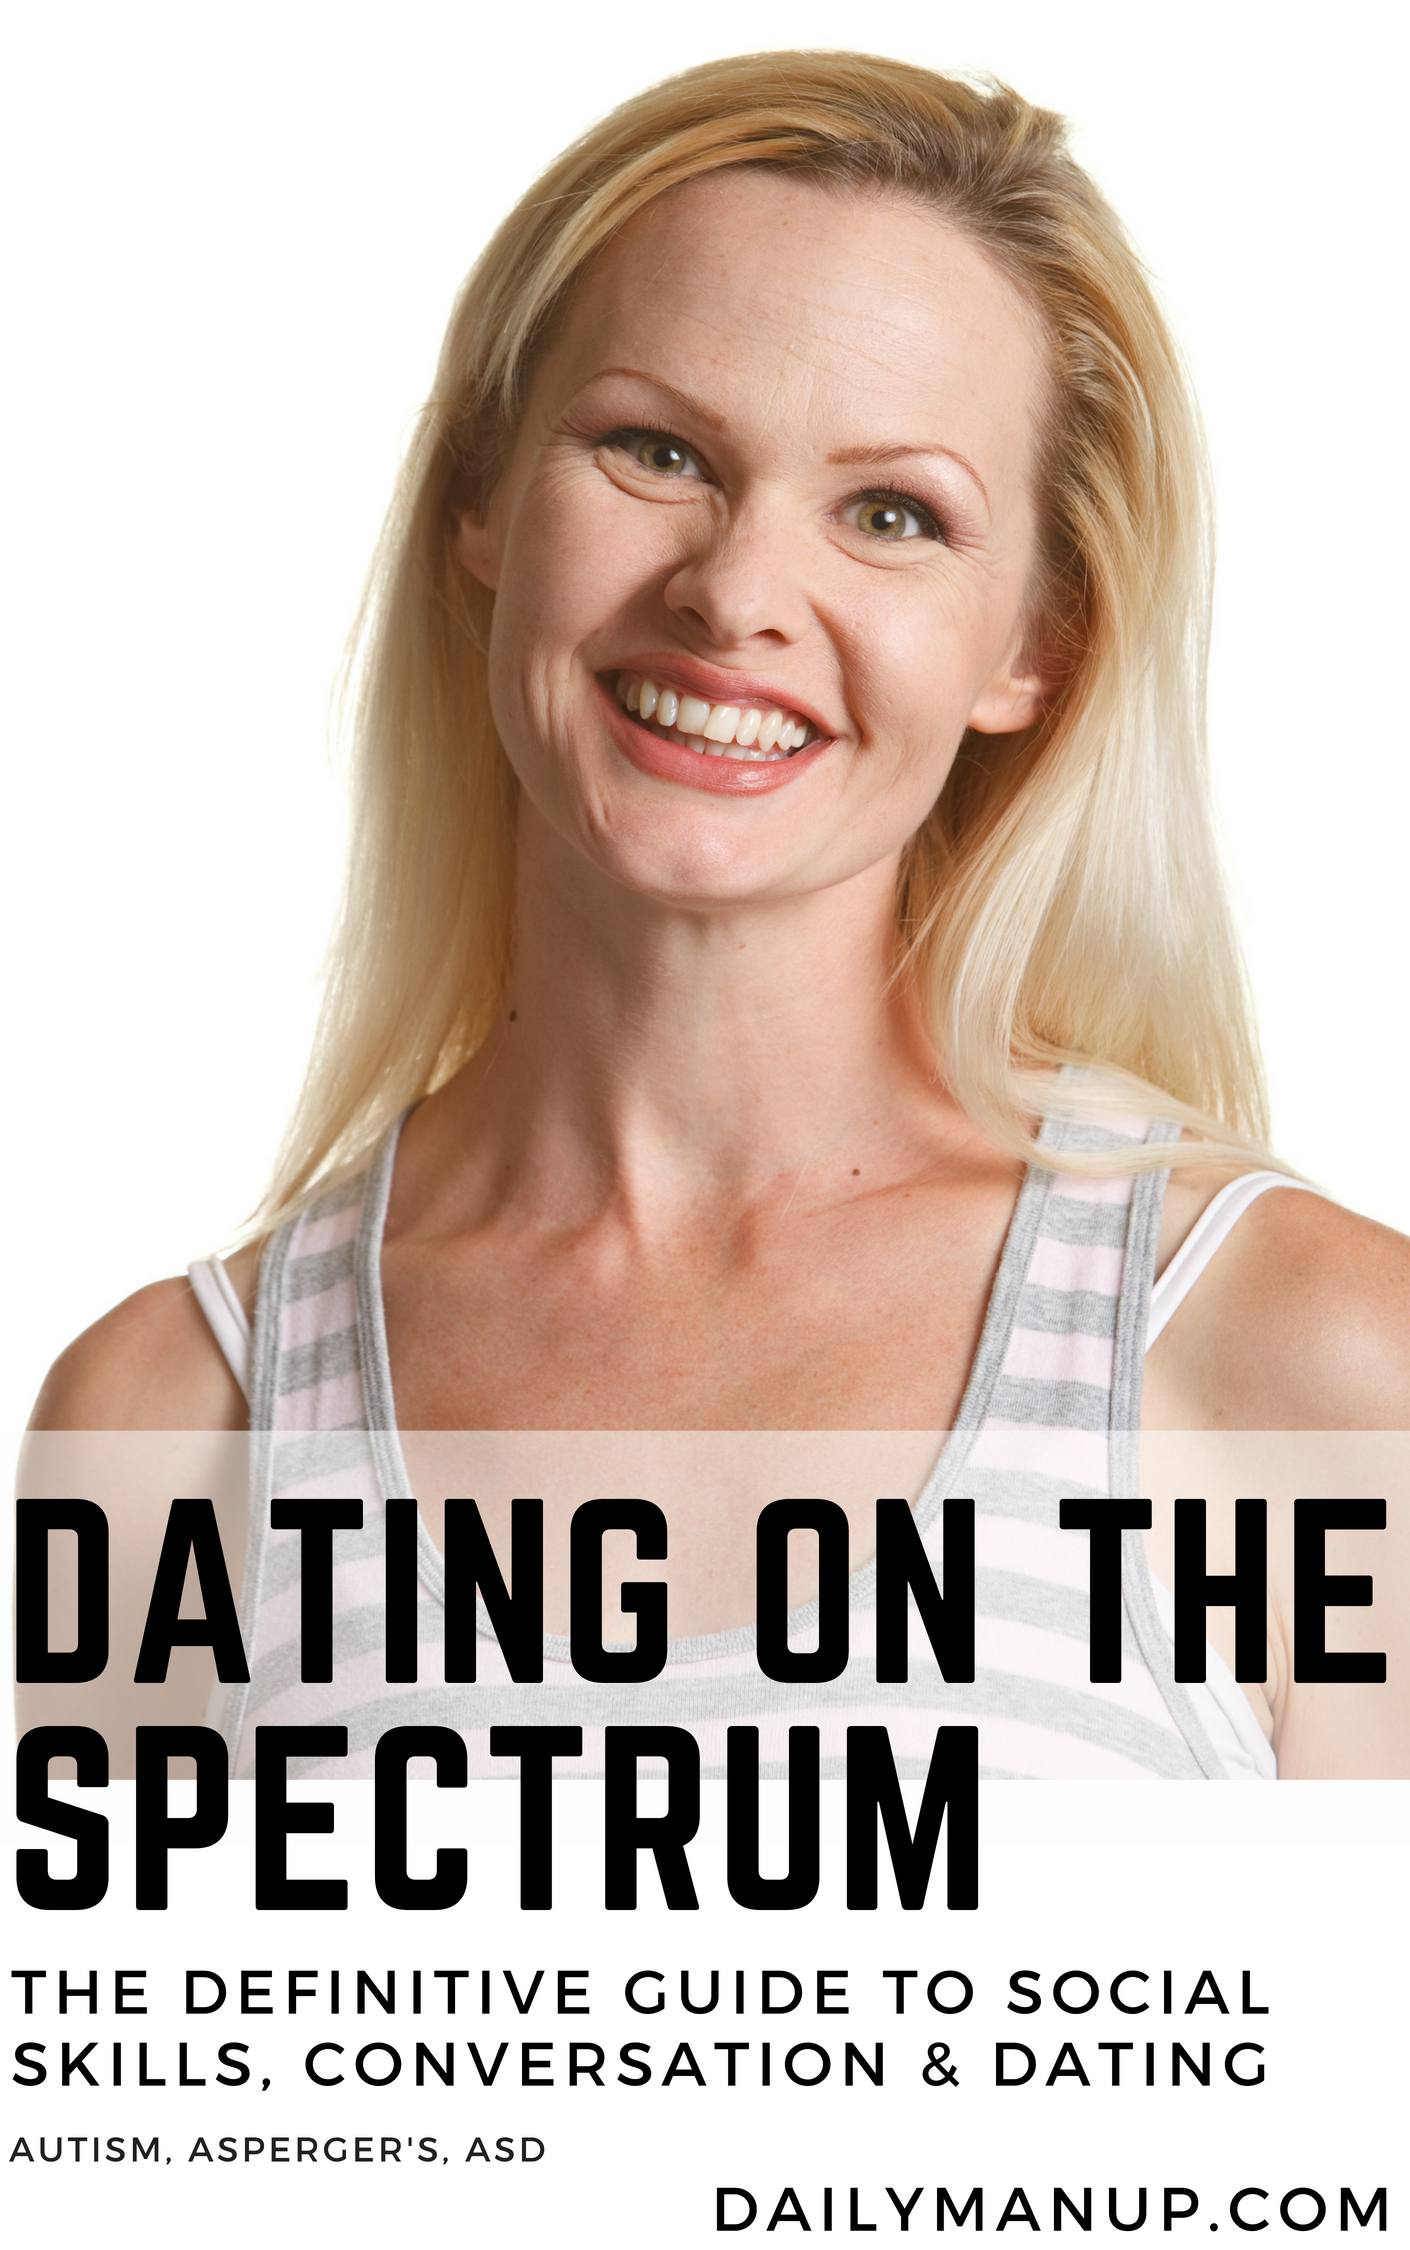 Autism dating tips